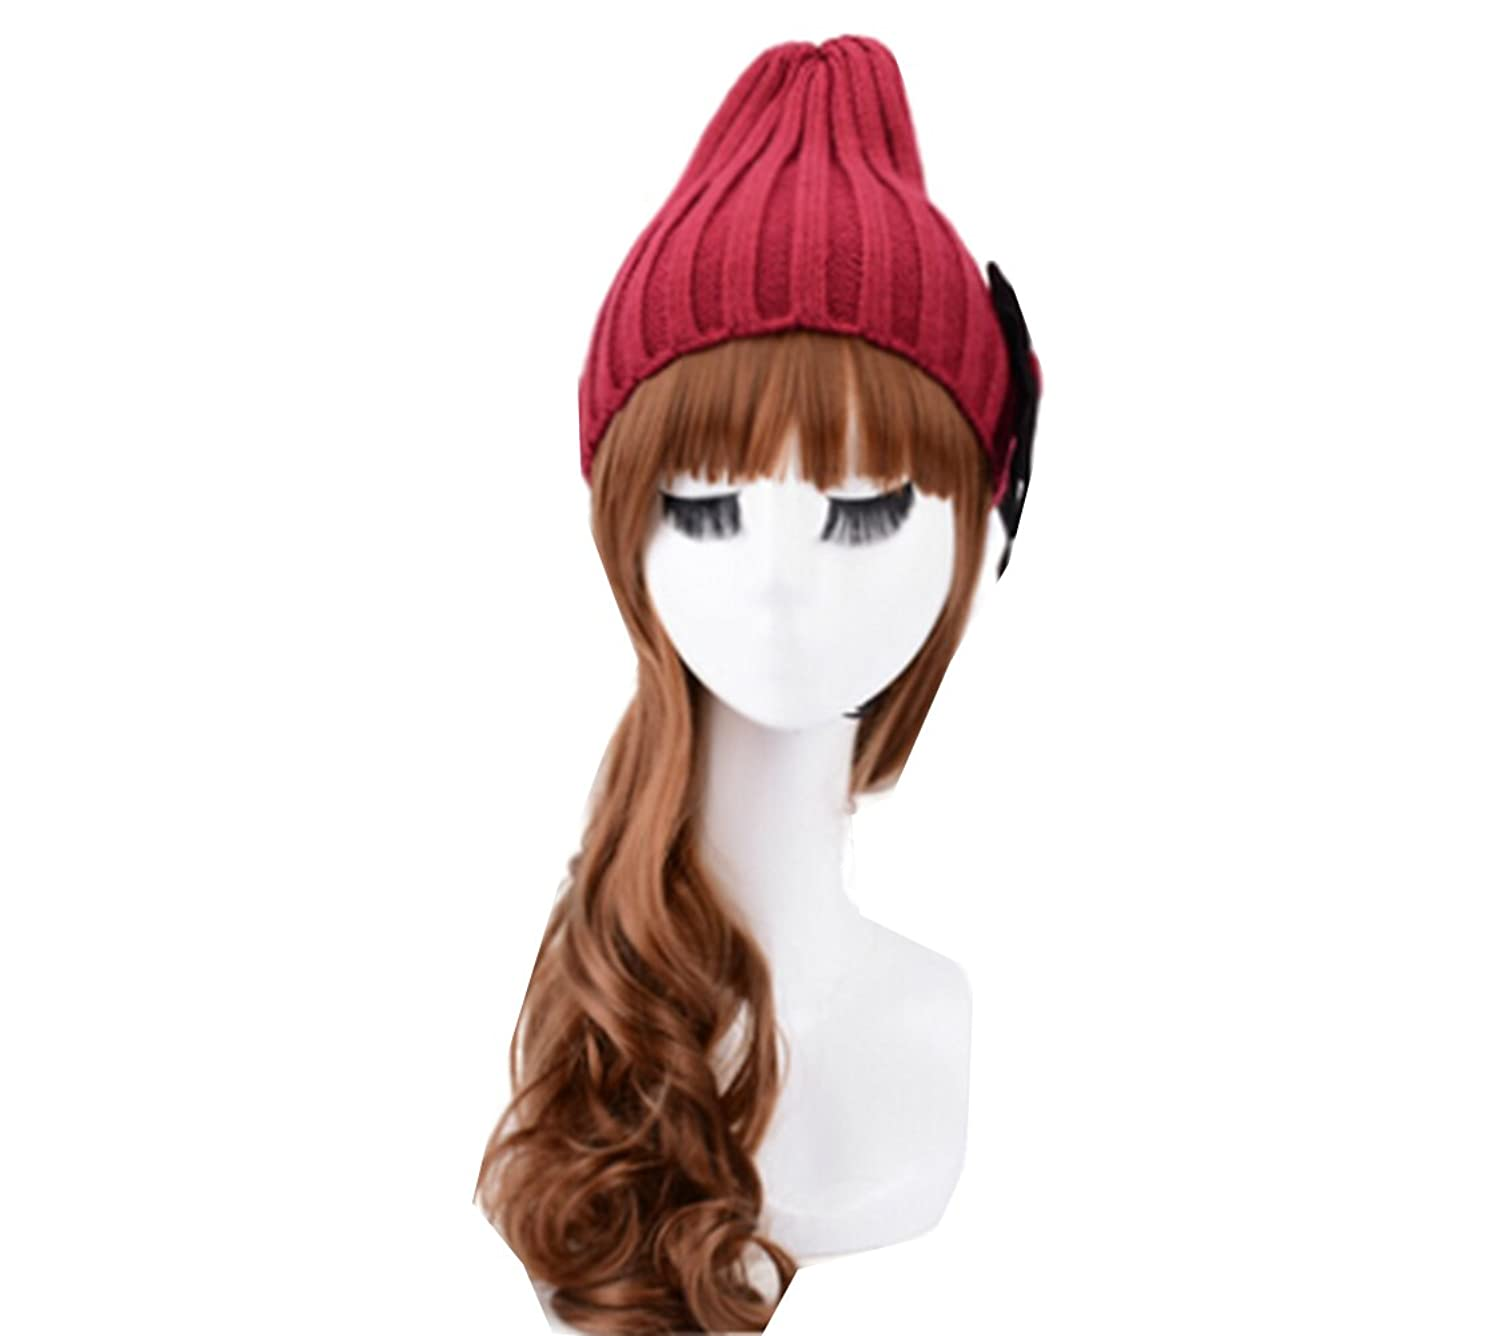 Km Women Autumn Fashion Cute Bow Hat Warmth Knitted Cap Dome Cap